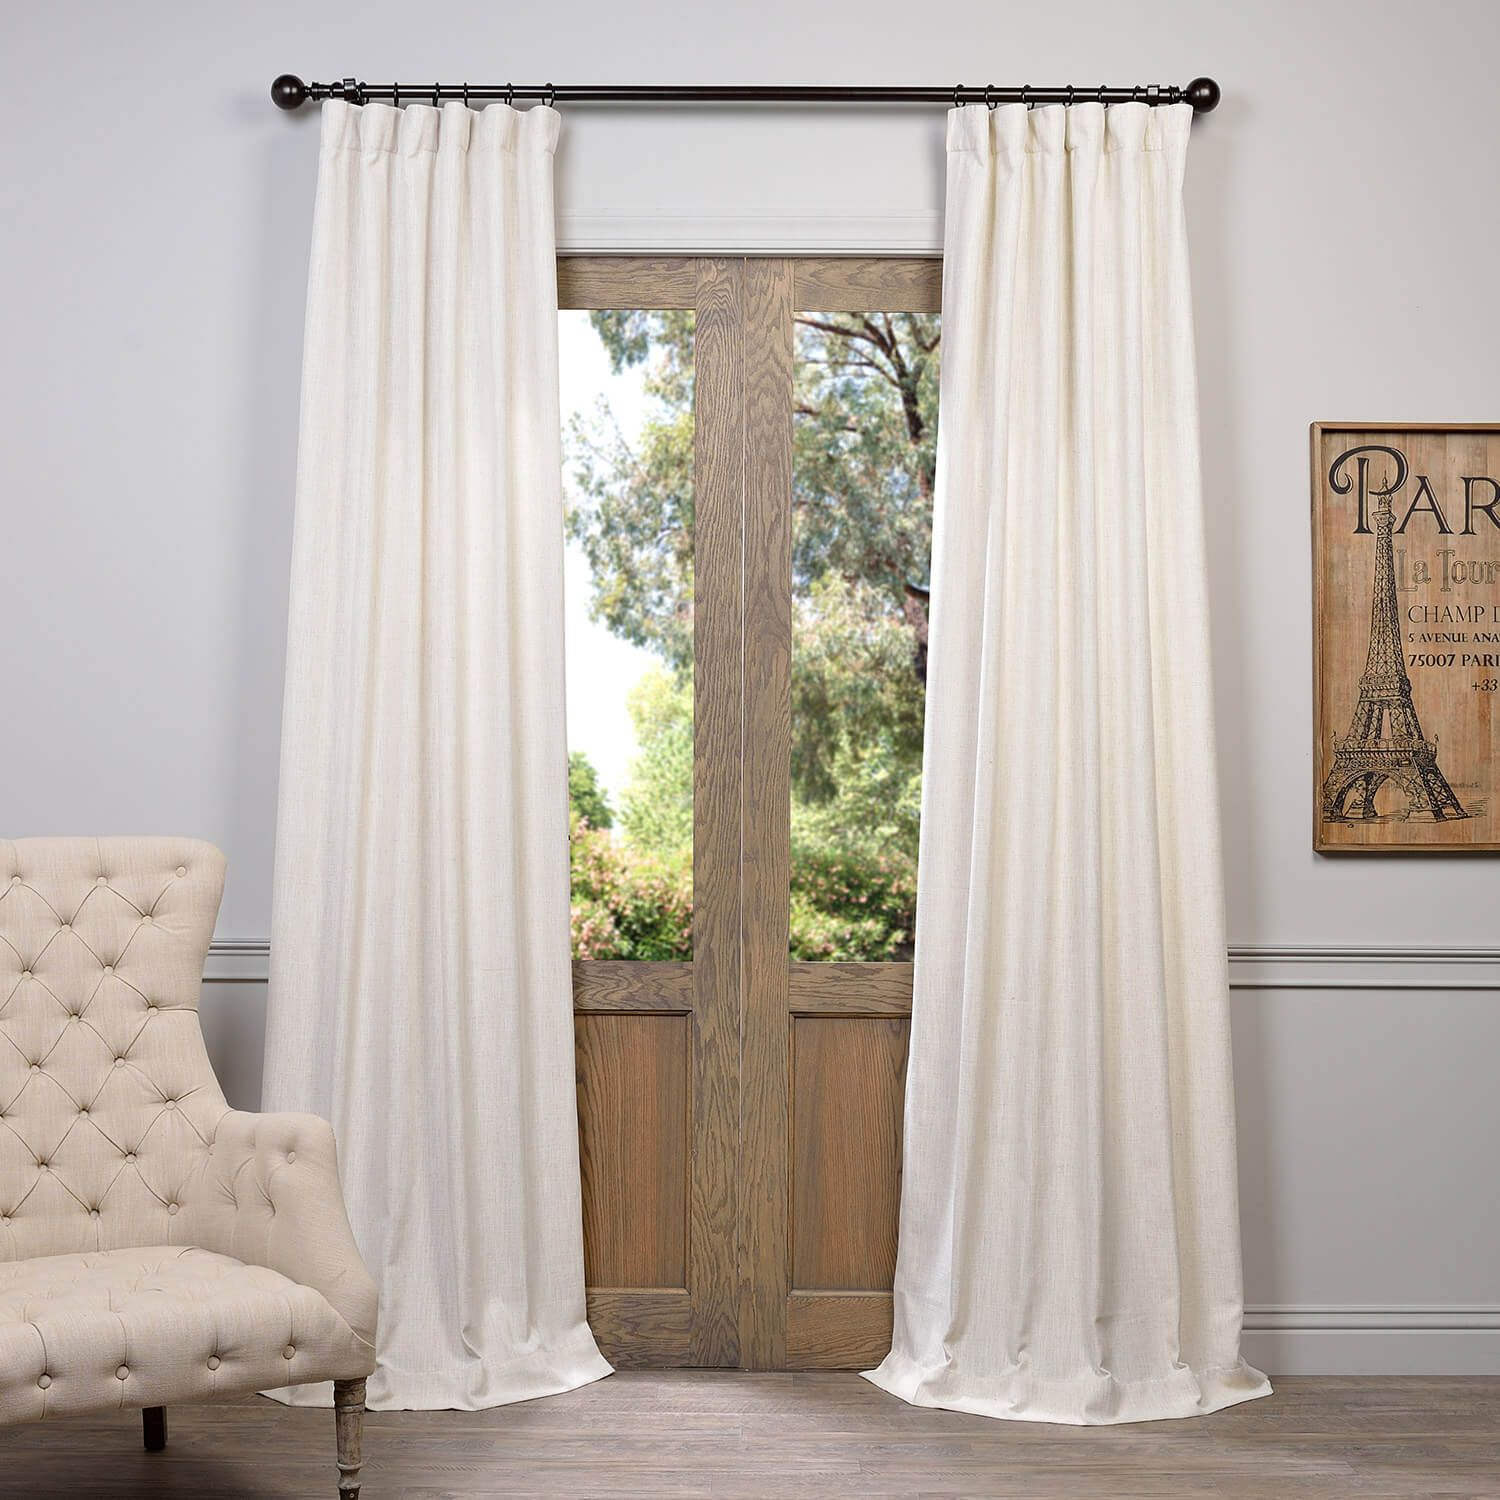 Master bedroom curtains  Pin by Rose Siersdale on Relaxing Master Bedroom  Pinterest  Linen